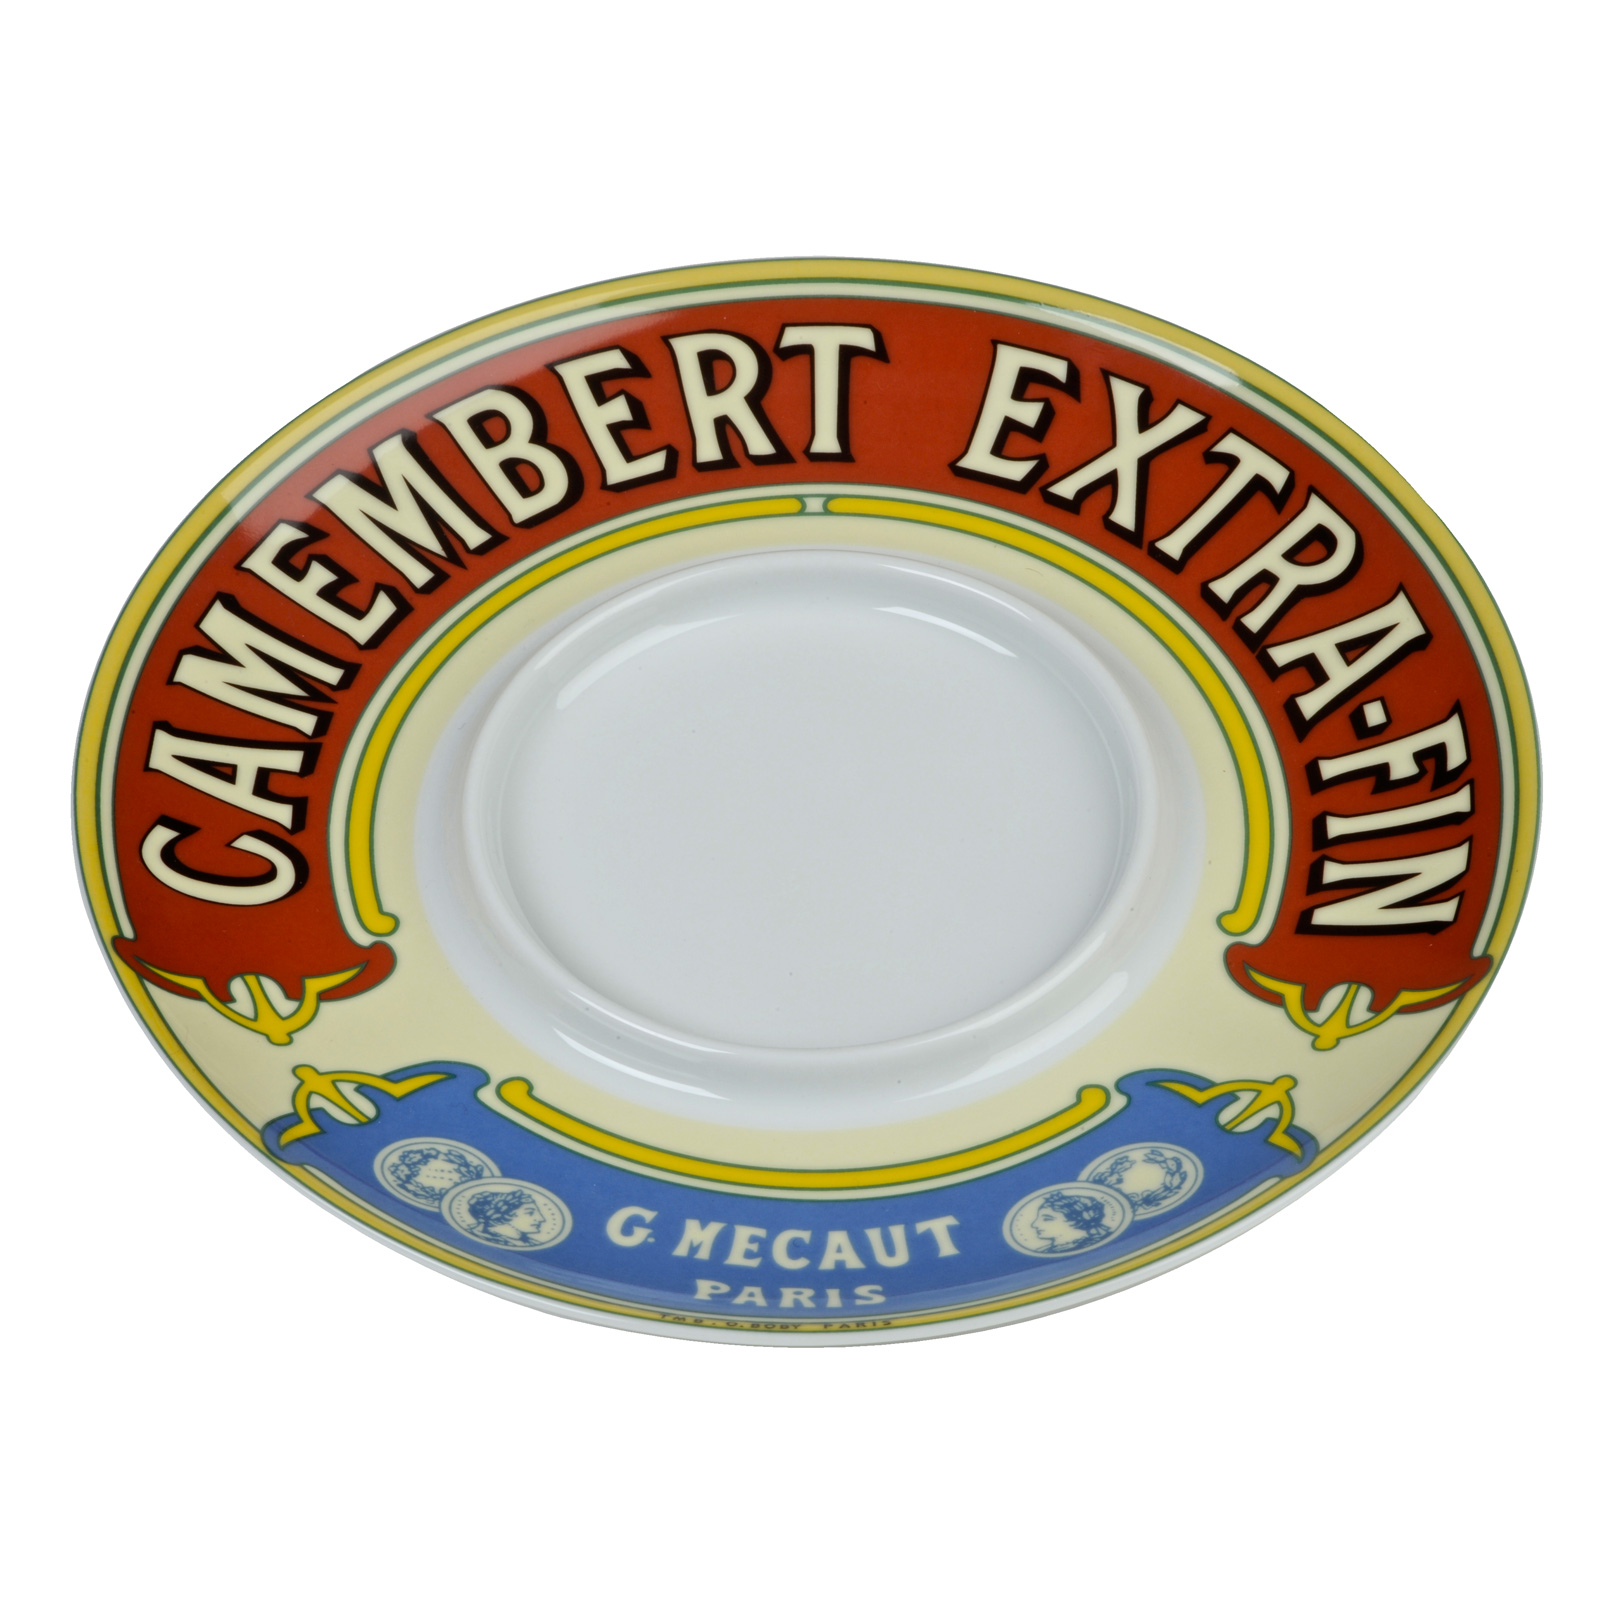 Classic Camembert Baker Platter by BIA